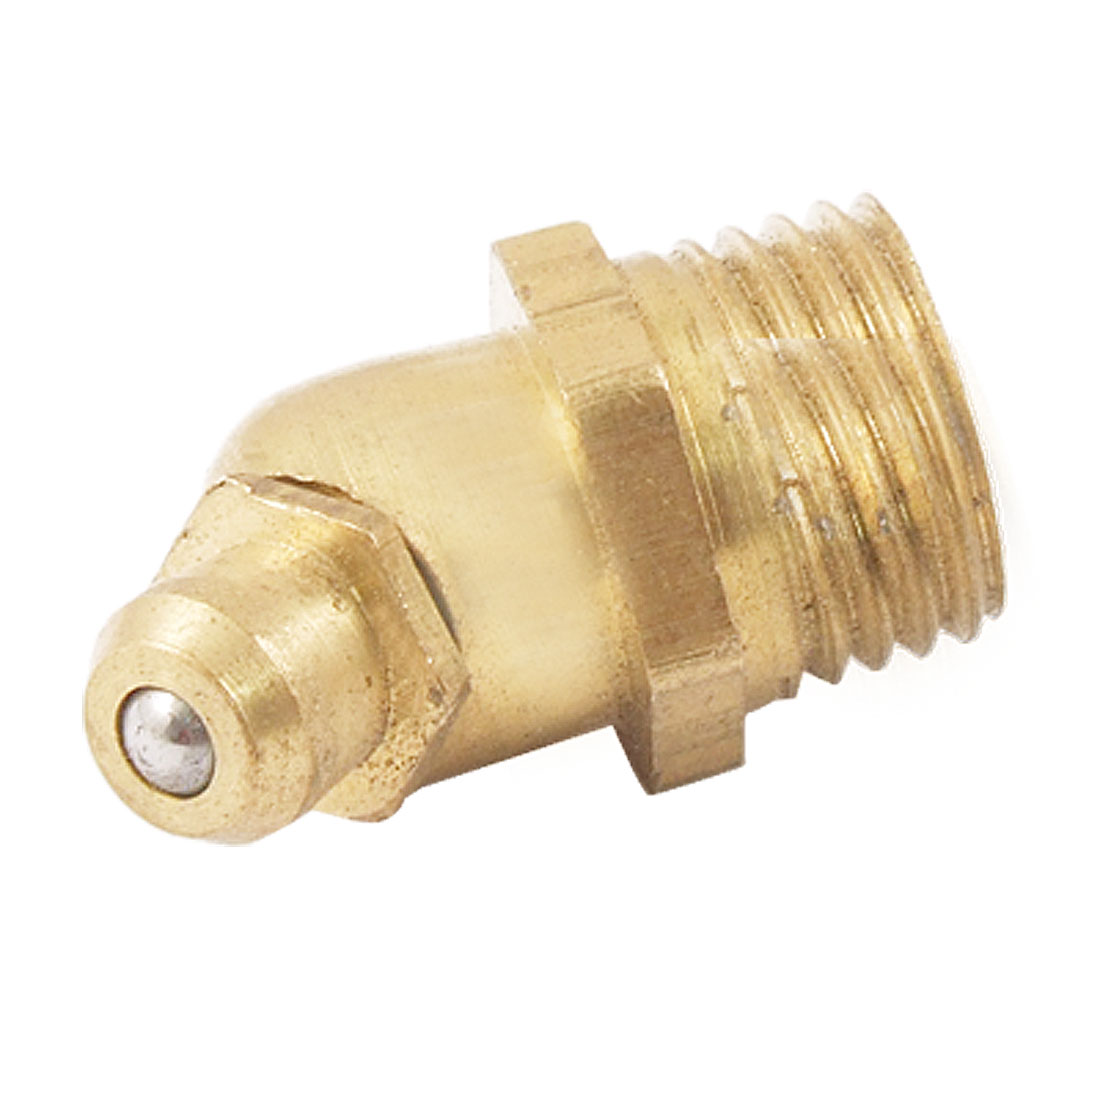 Brass 45 Degree Angle Type 10mm M10 Grease Nipple Zerk Fitting